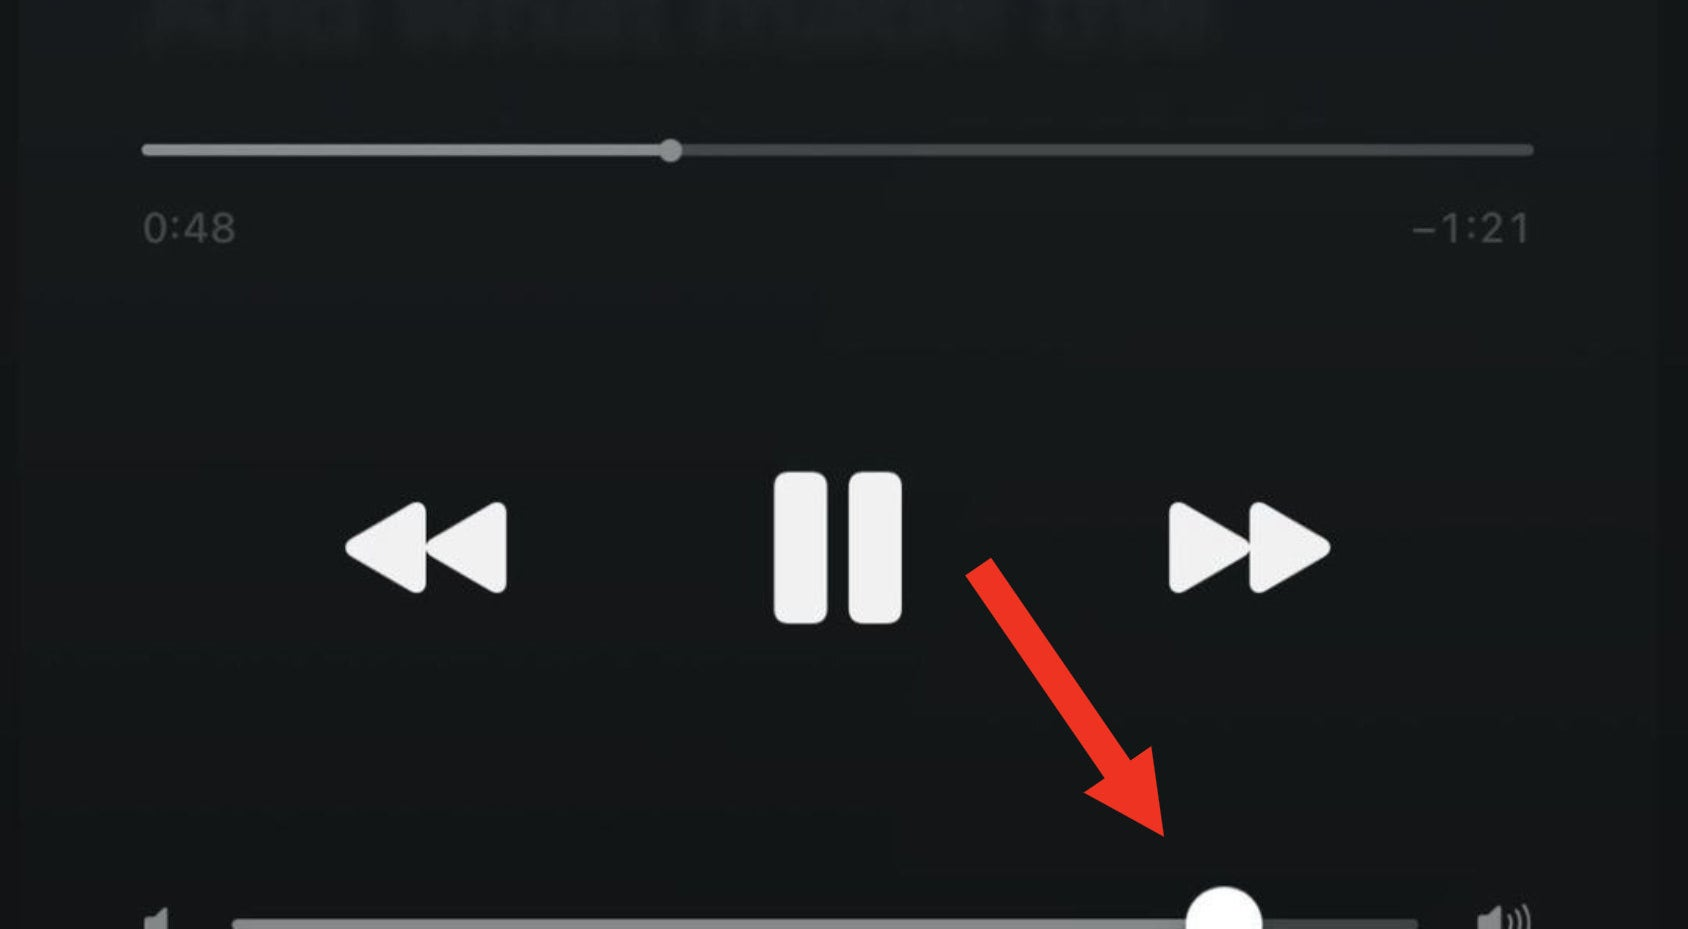 Arrow pointing to volume cut off but past midway